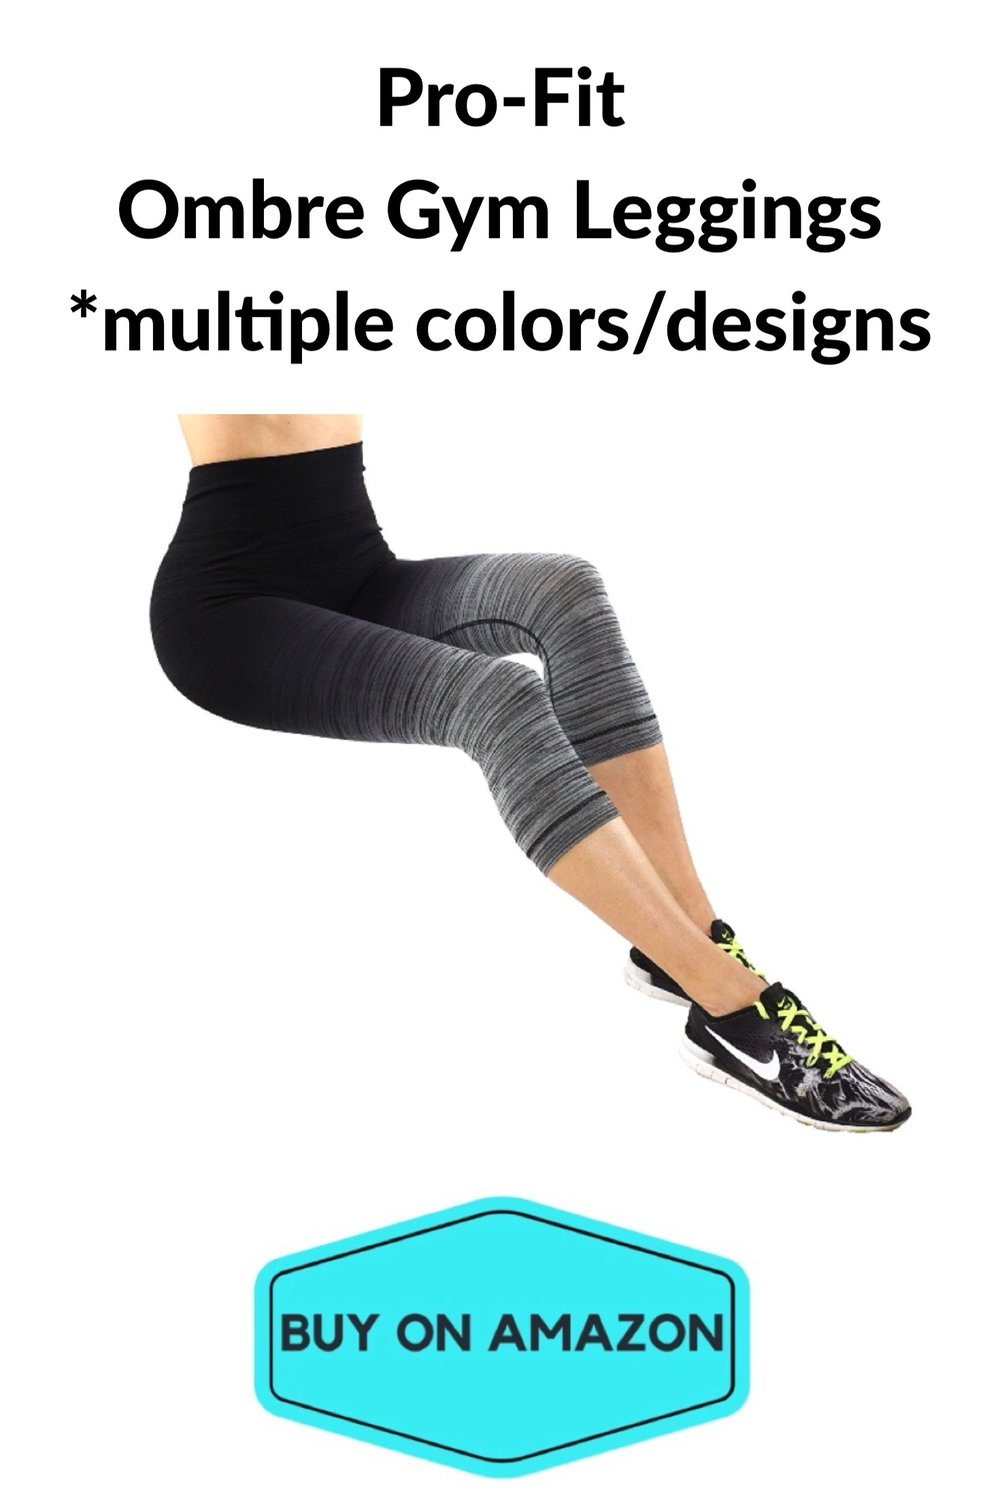 Pro-Fit Ombre Gym Leggings